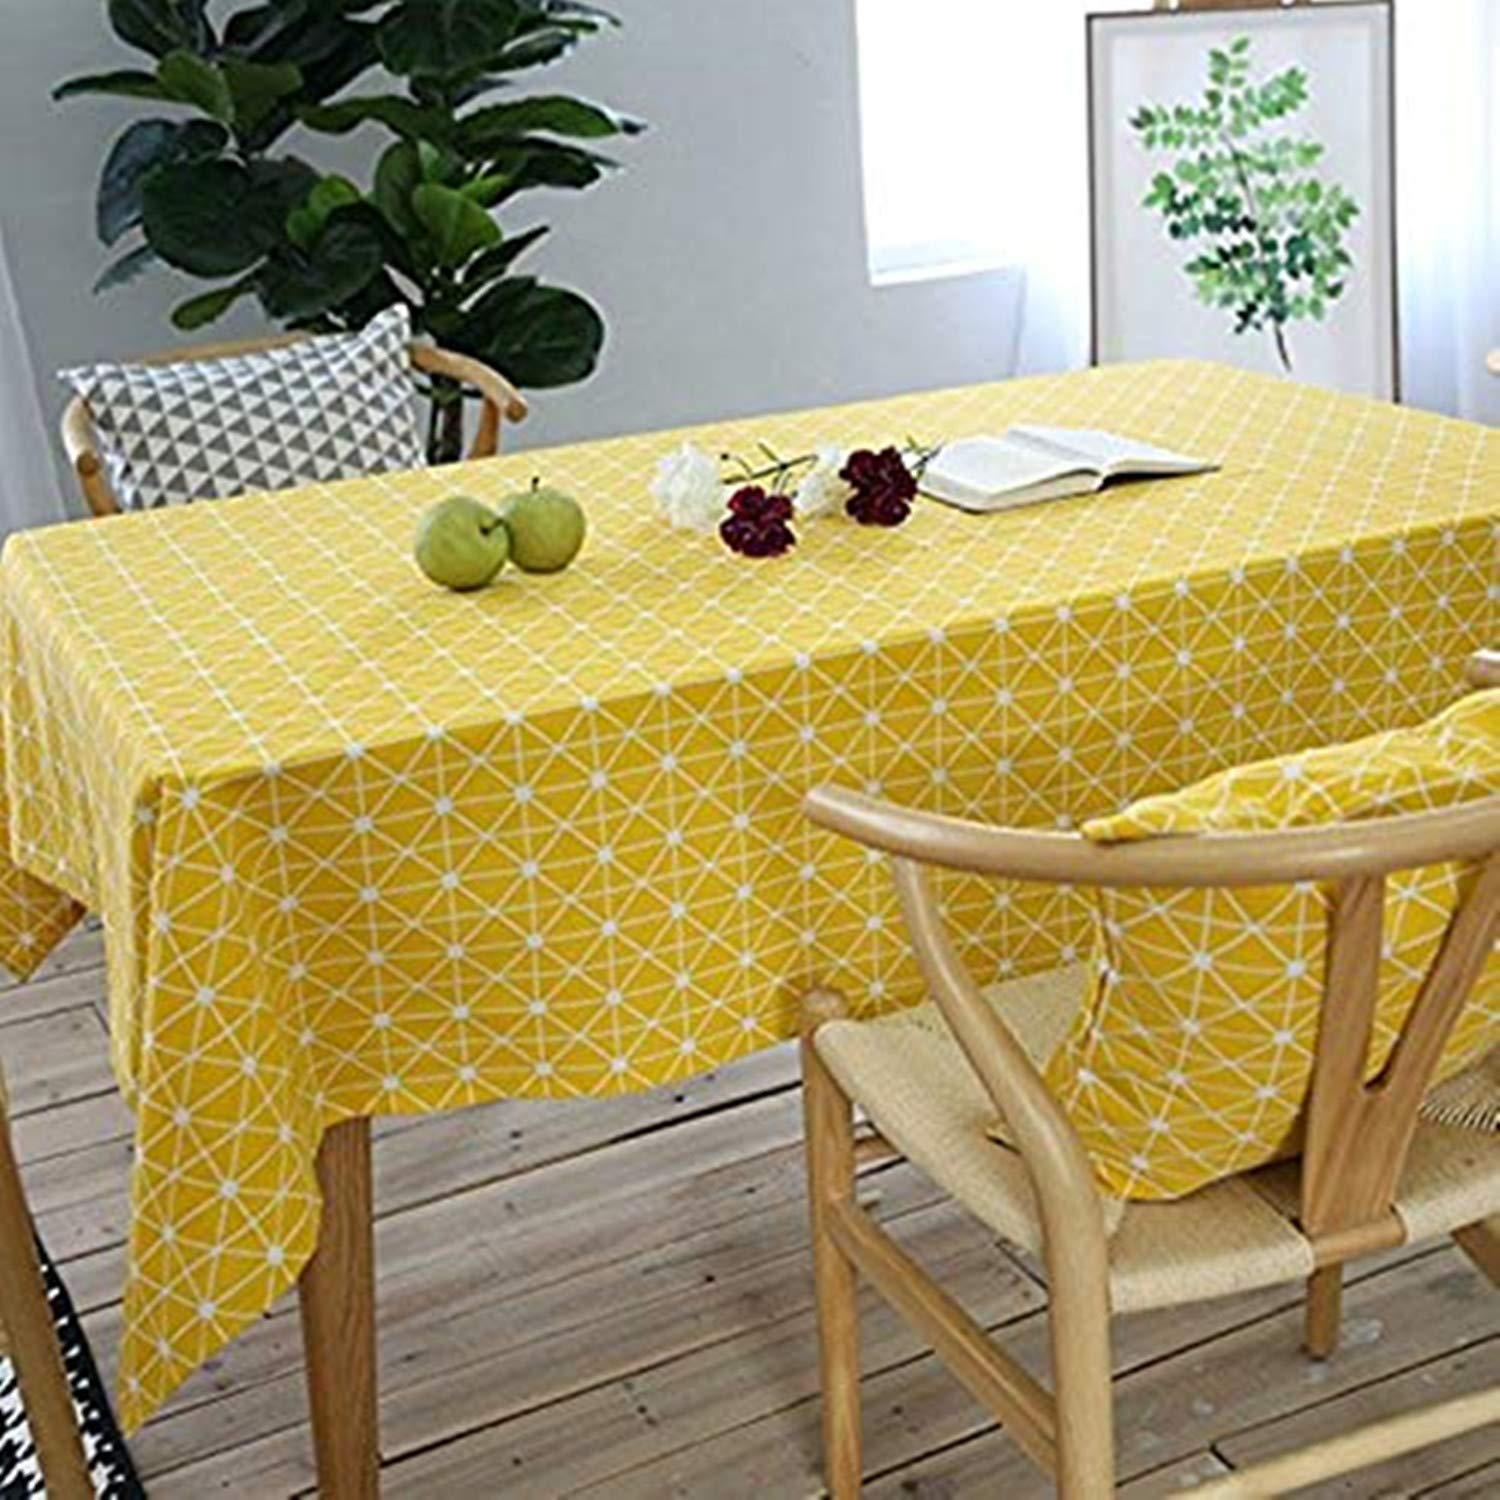 Asvert Tablecloth Rectangle Nordic Style Country Style House Red White Plaid Table Covers, Suitable For The Restaurant, Cafe, Hotel (140x220cm)